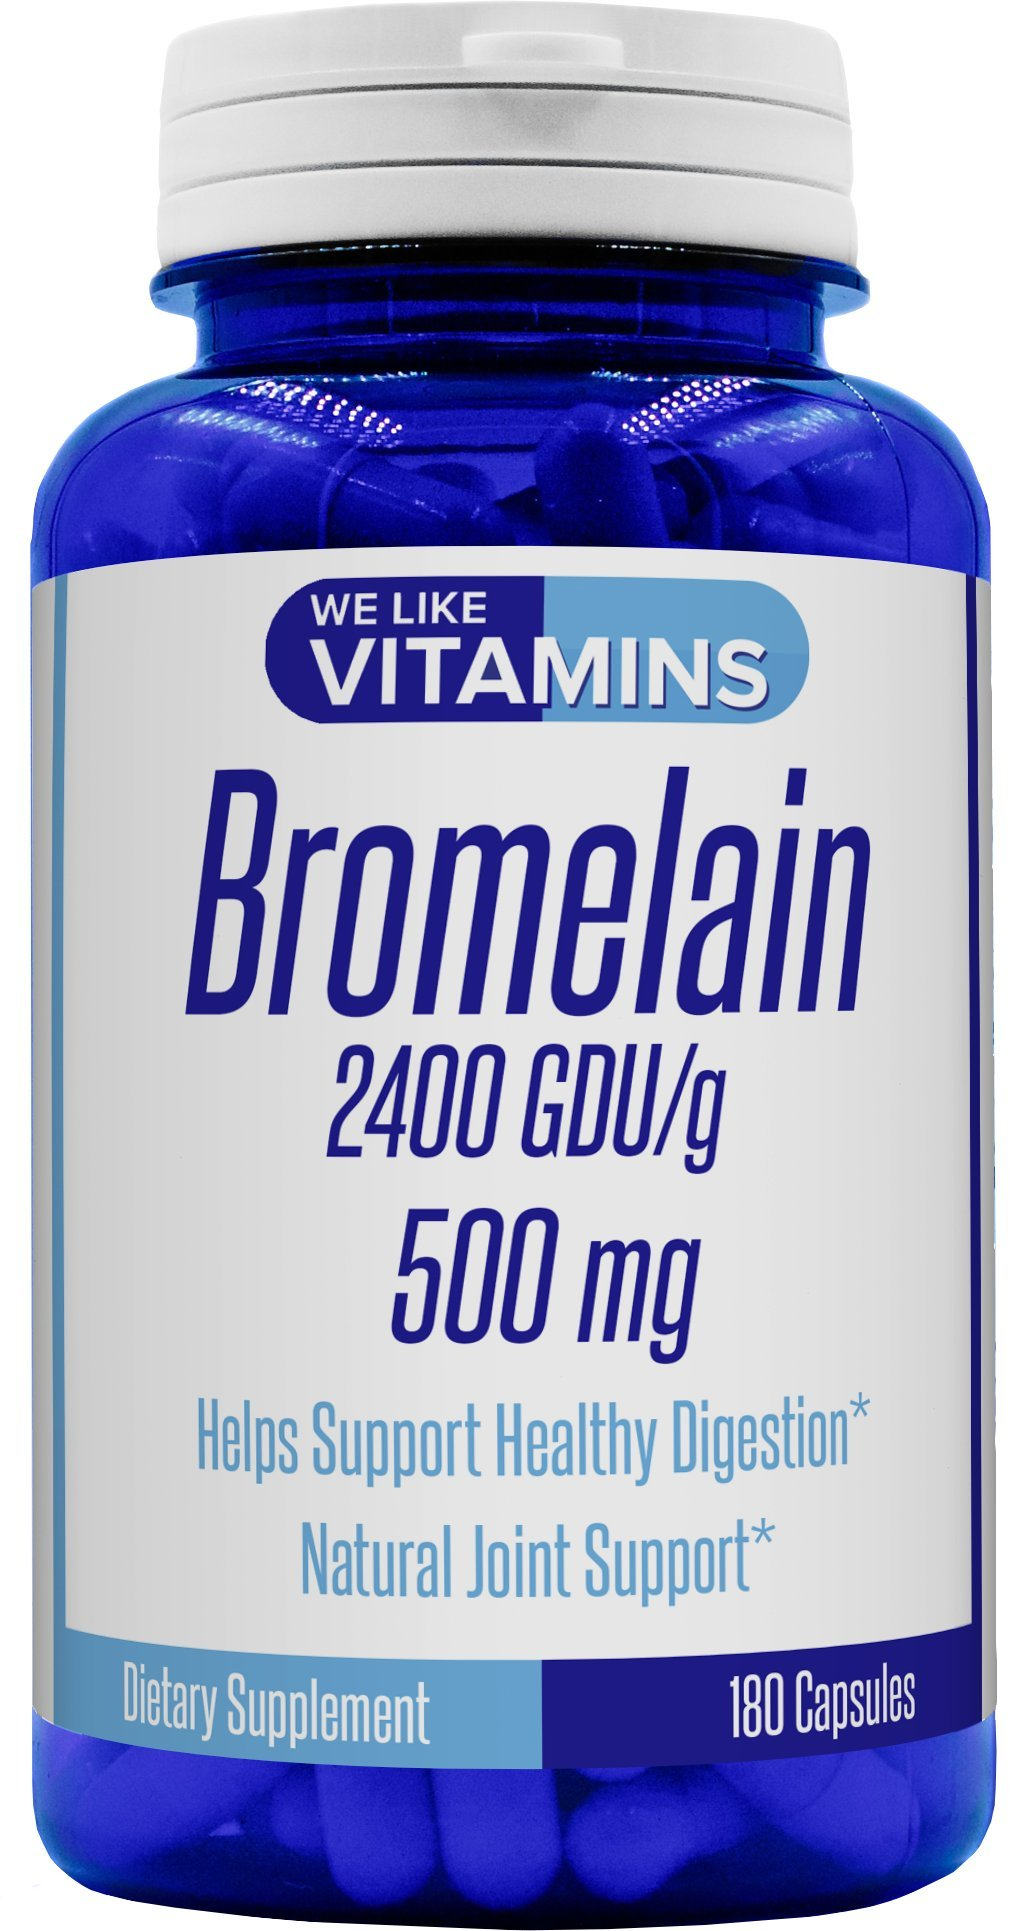 Bromelain 500mg - 180 Capsules - Best Value Bromelain Supplement on Amazon - Proteolytic Enzymes from Pineapple Supporting Nutrient Absorption and Digestion 2400 GDU/g*